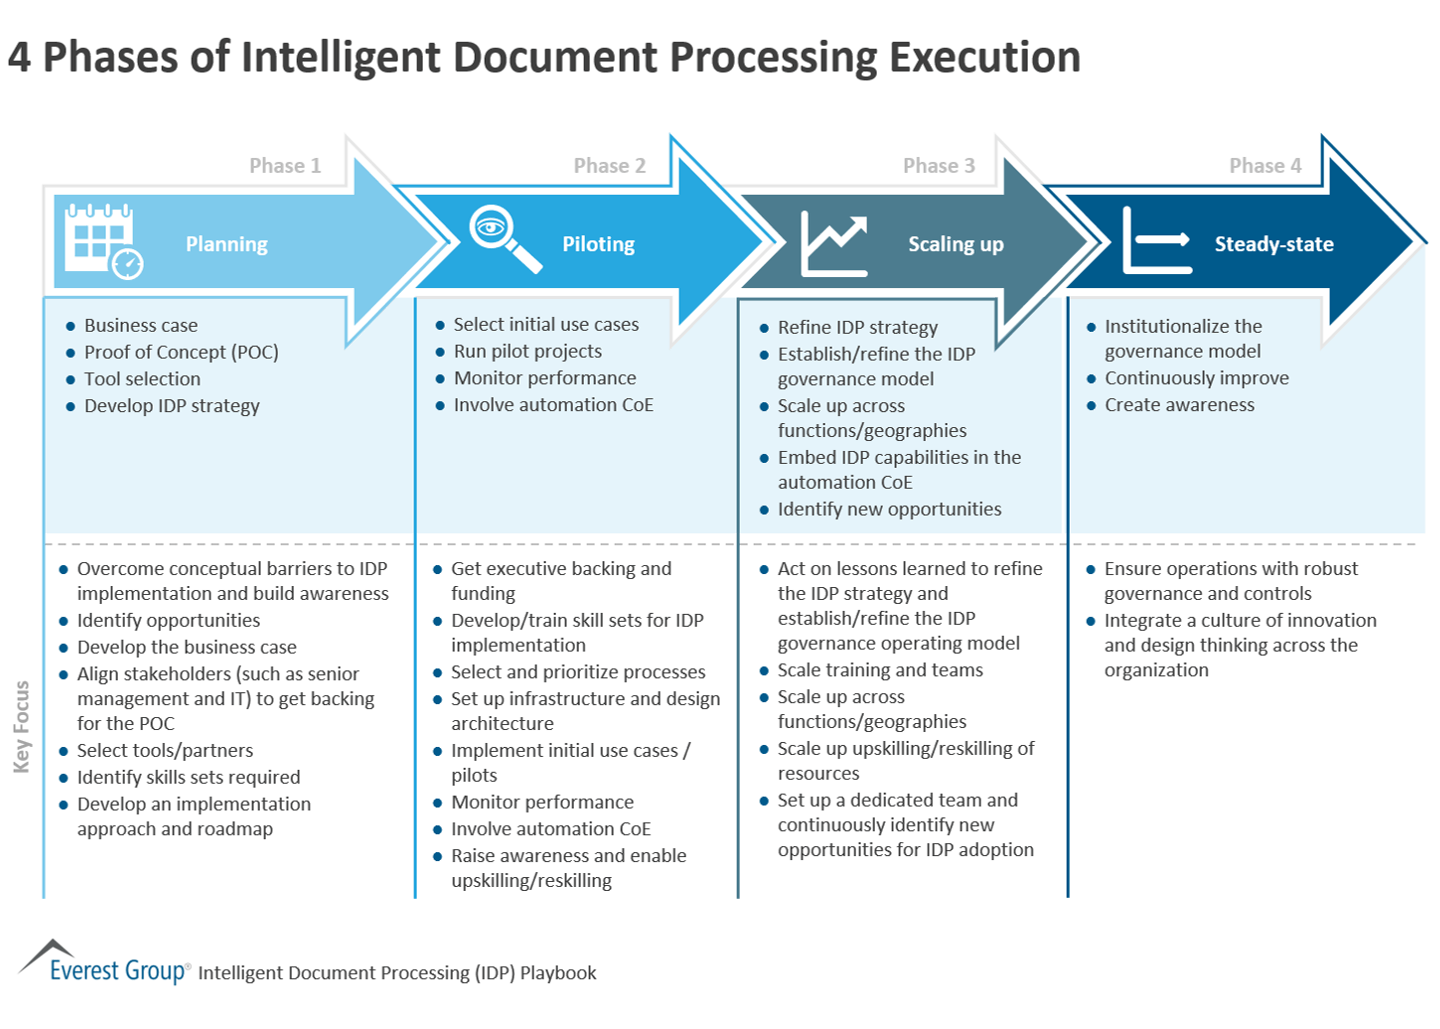 4 Phases of Intelligent Document Processing Execution